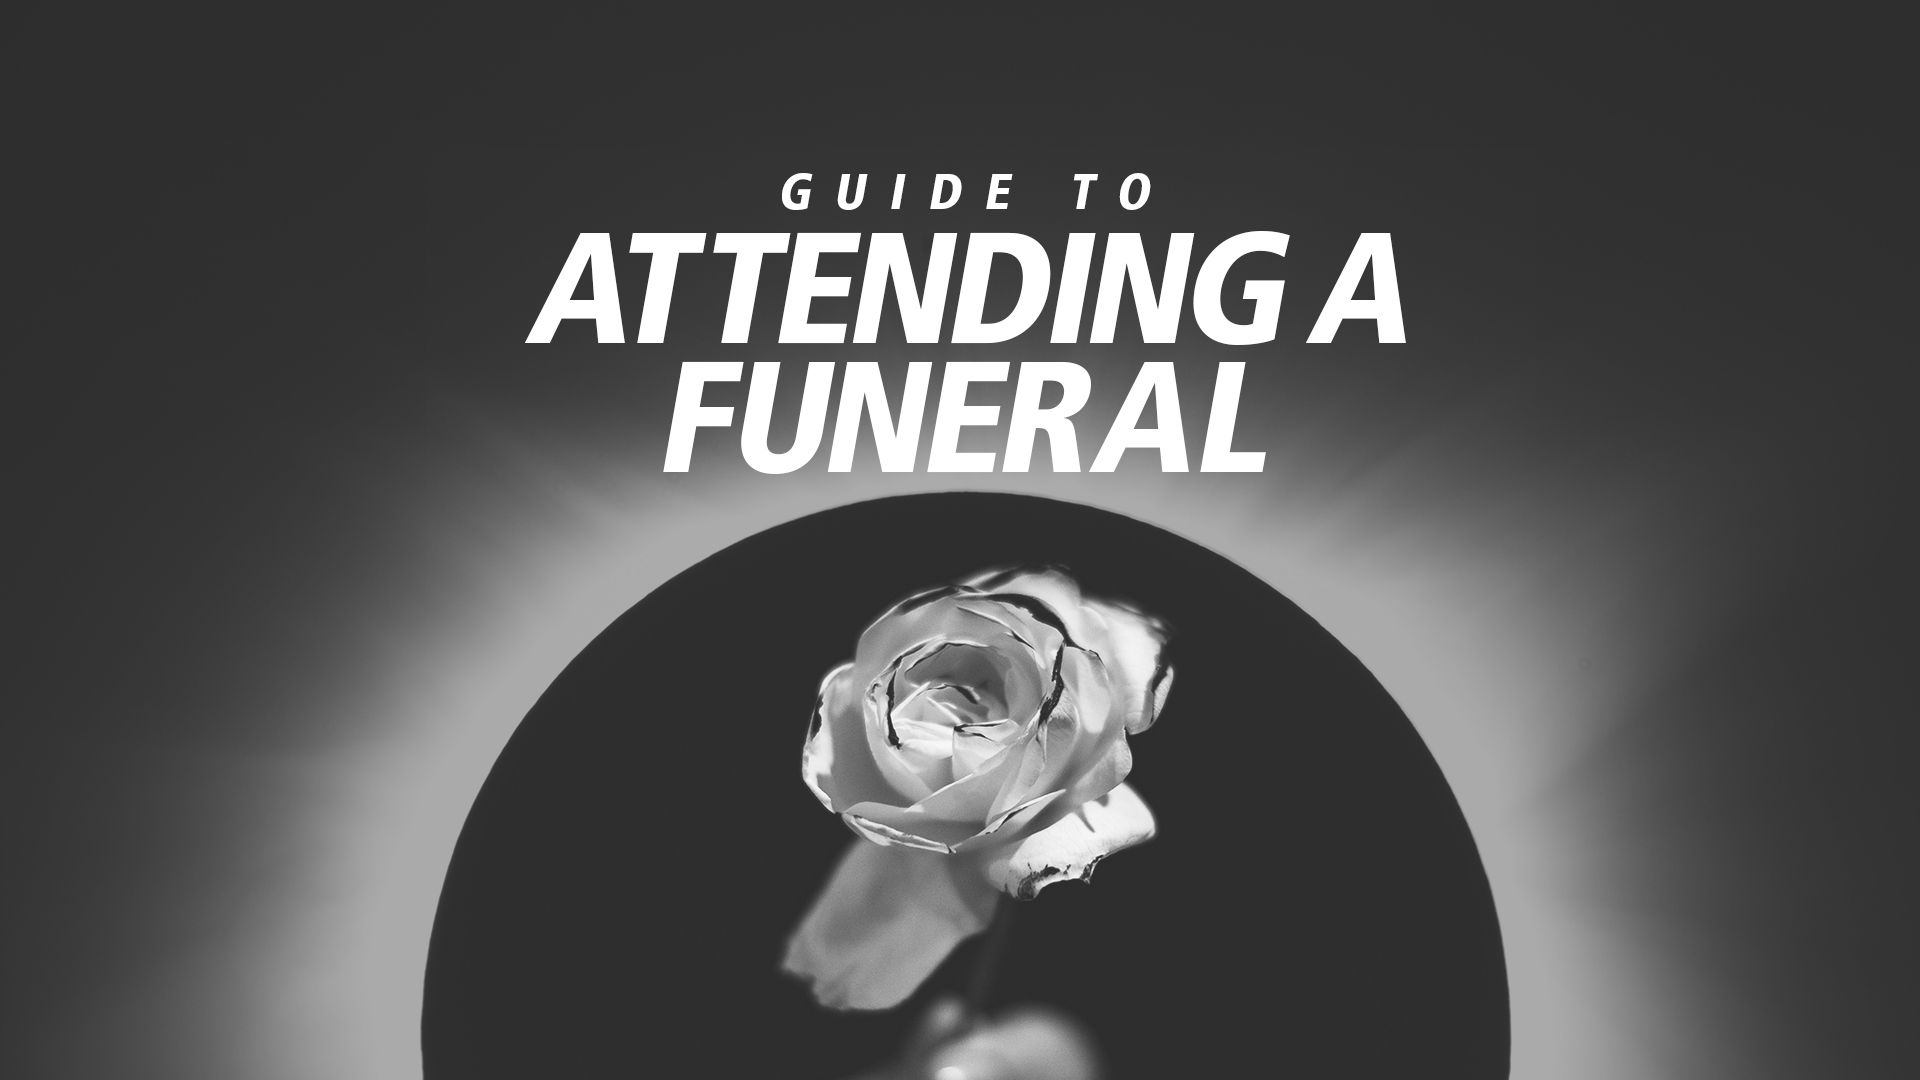 Guide to Attending a Funeral - How To Adult